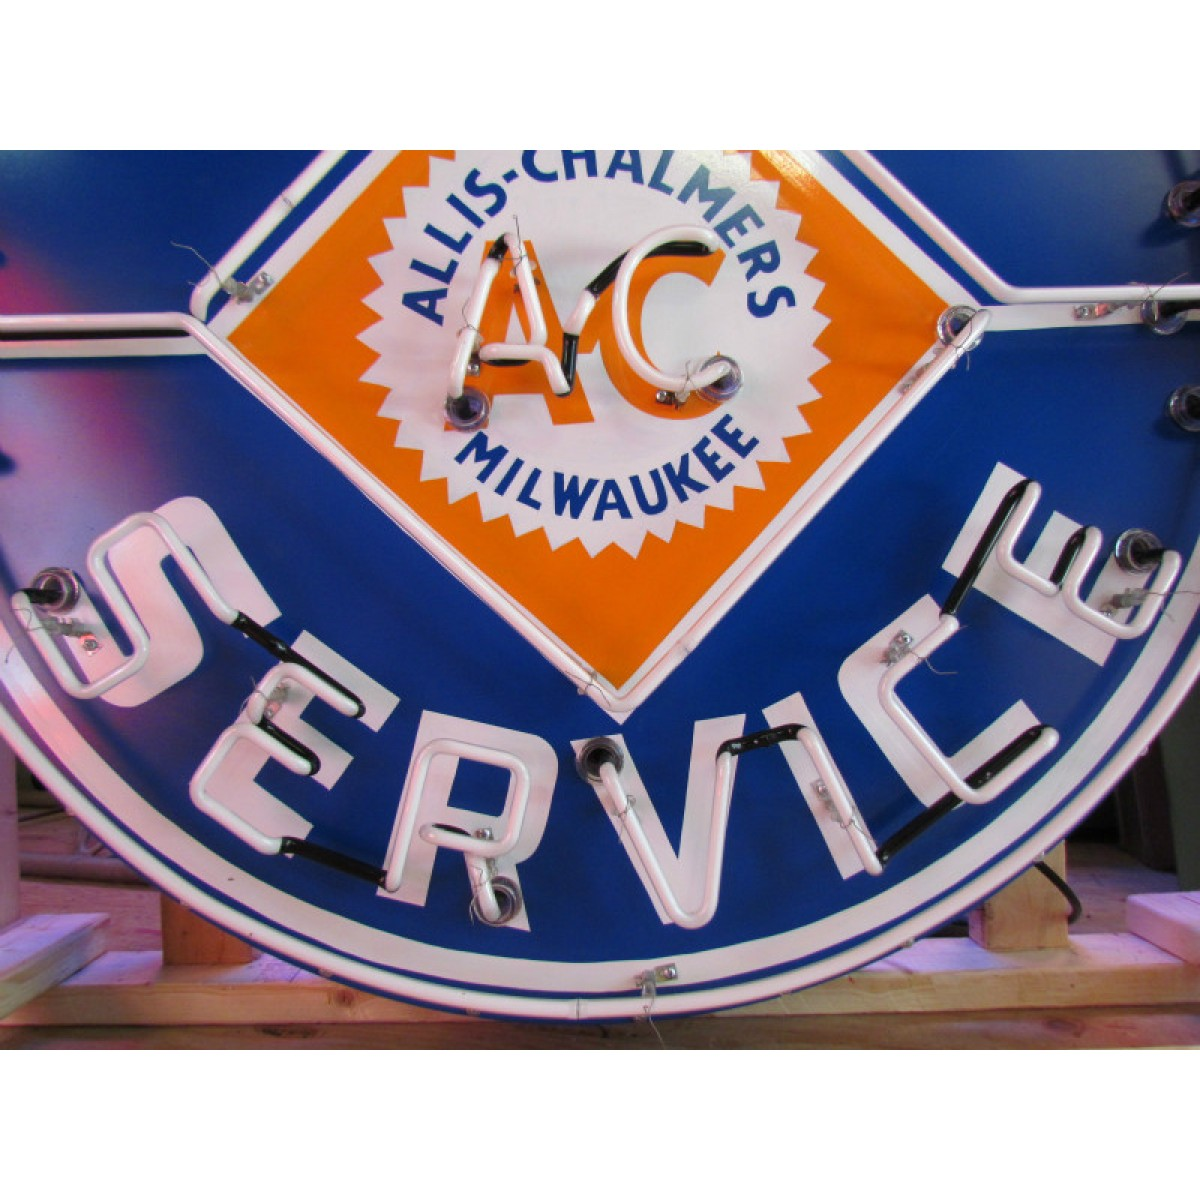 New Single-Sided Allis Chalmers Parts Service Neon Sign - 48